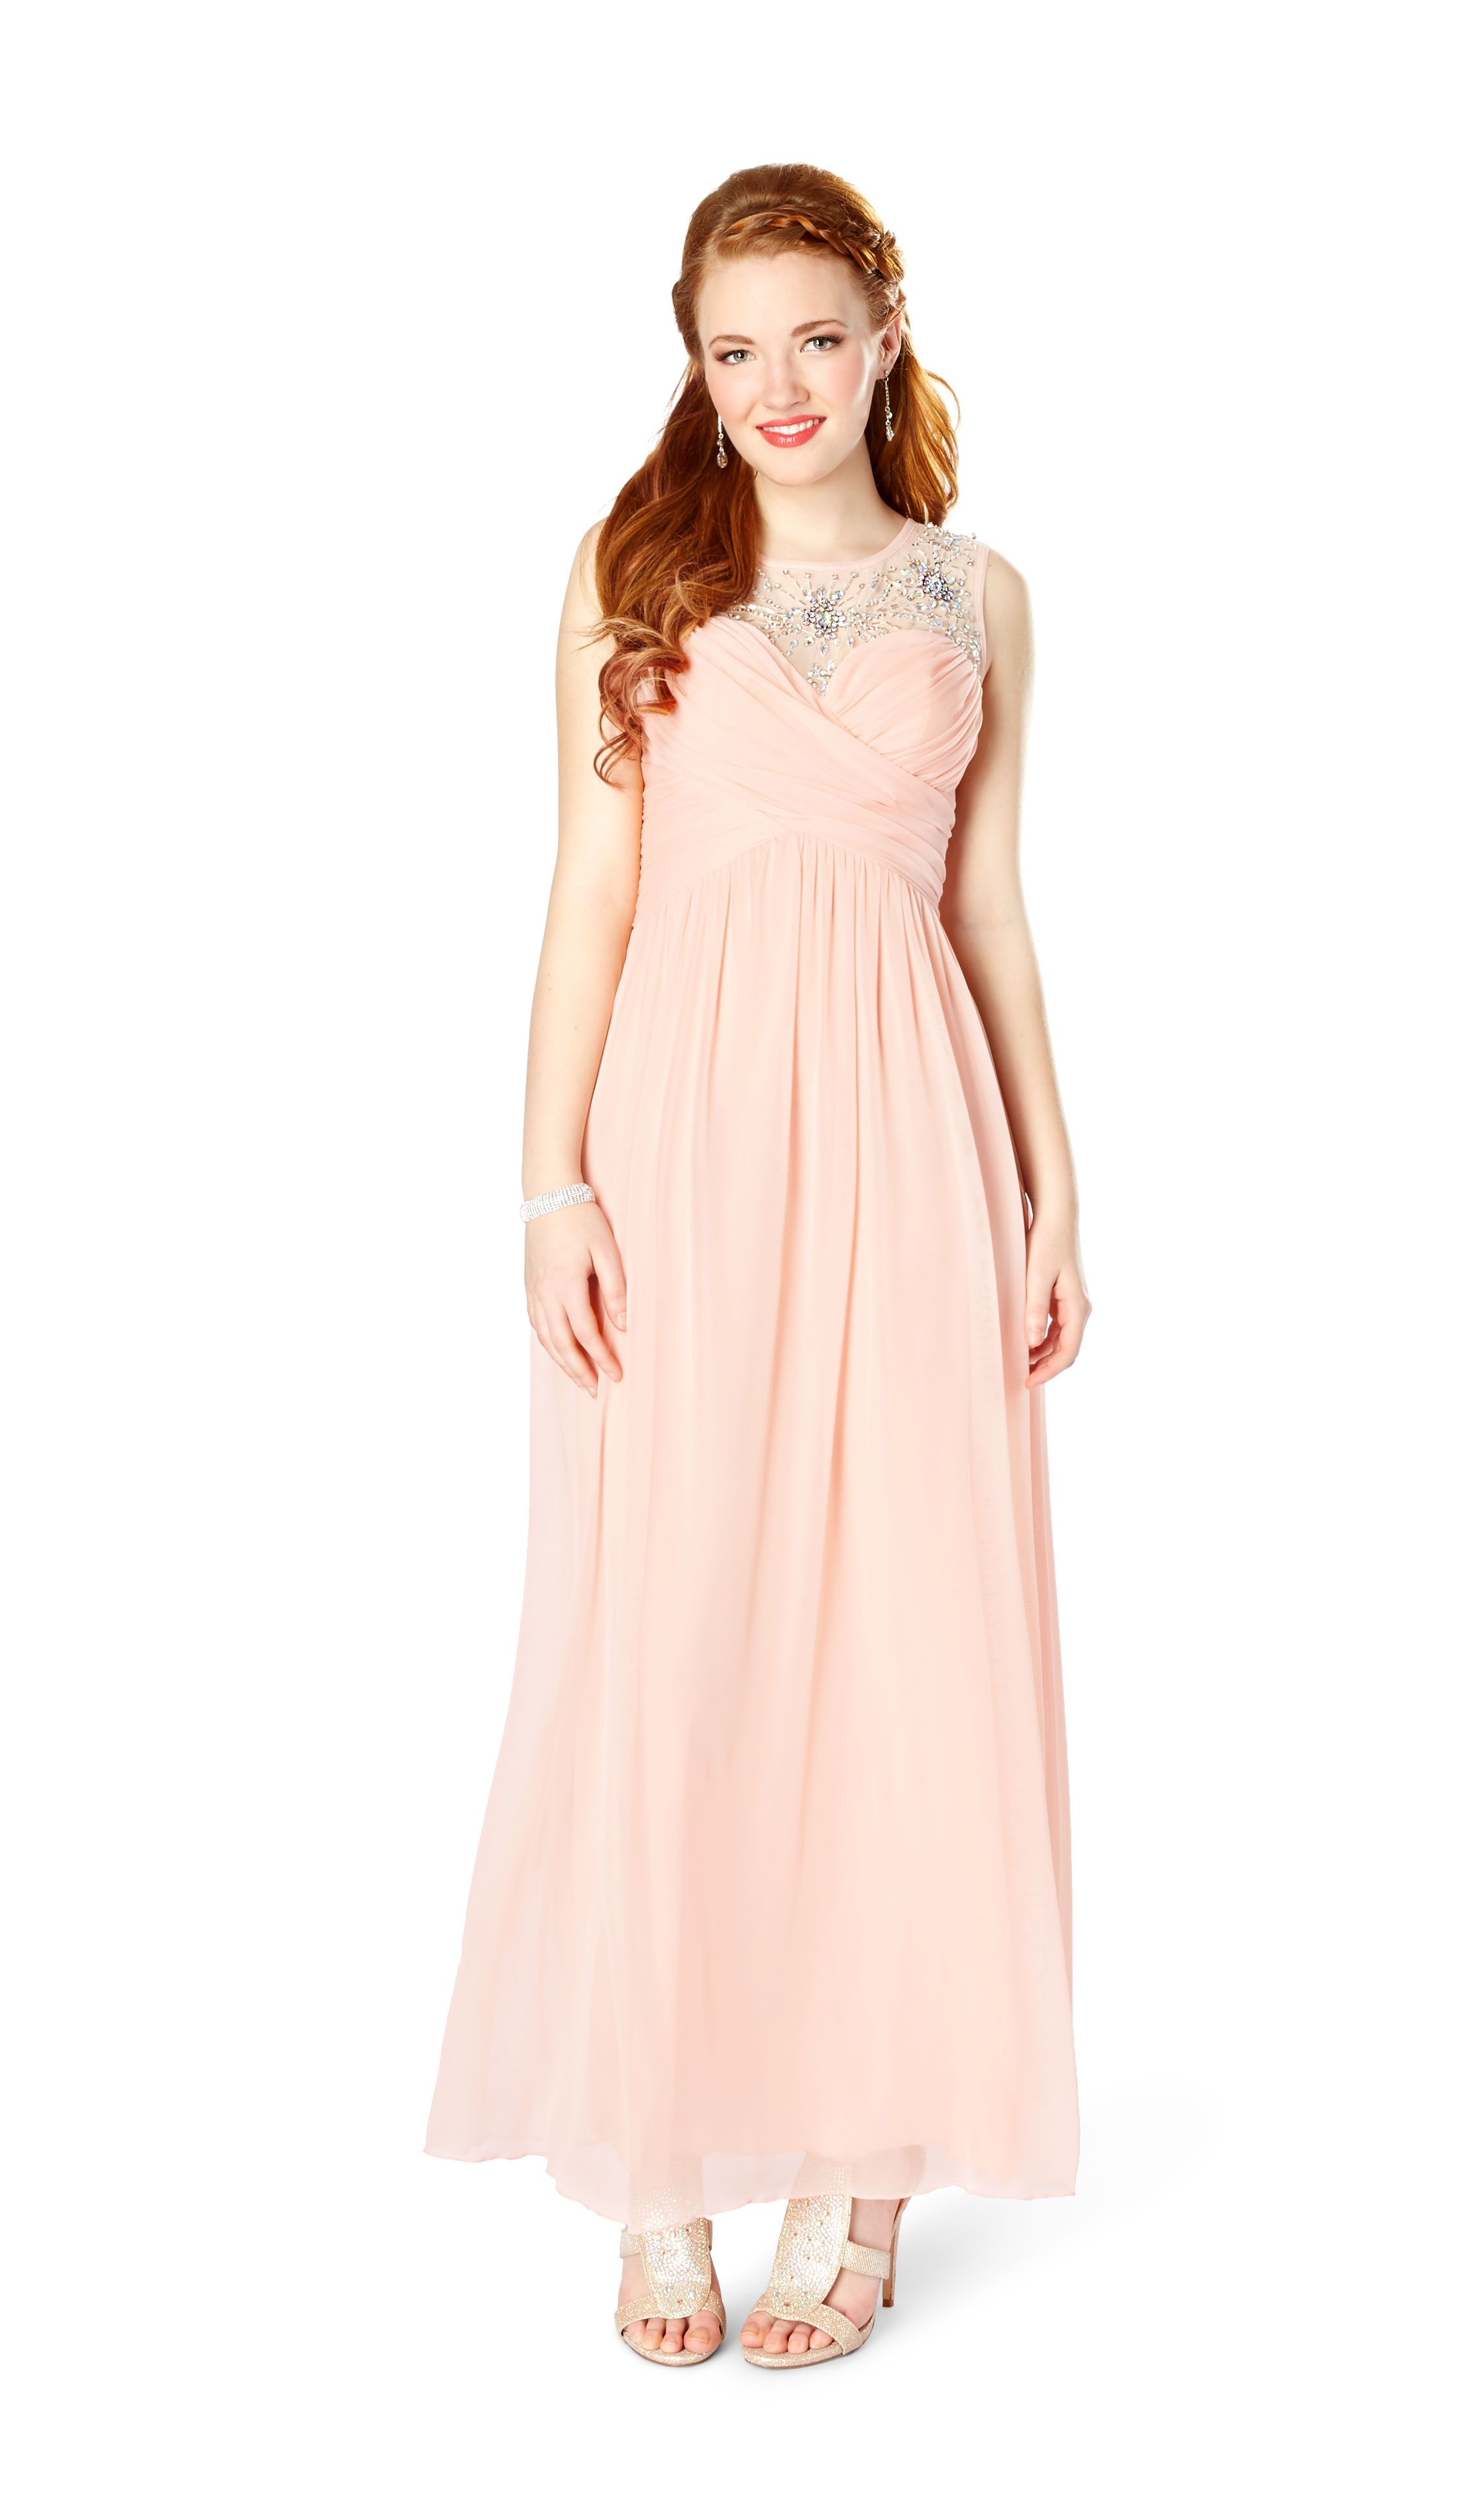 Peachy keen rue teen formal pinterest prom rock girls and